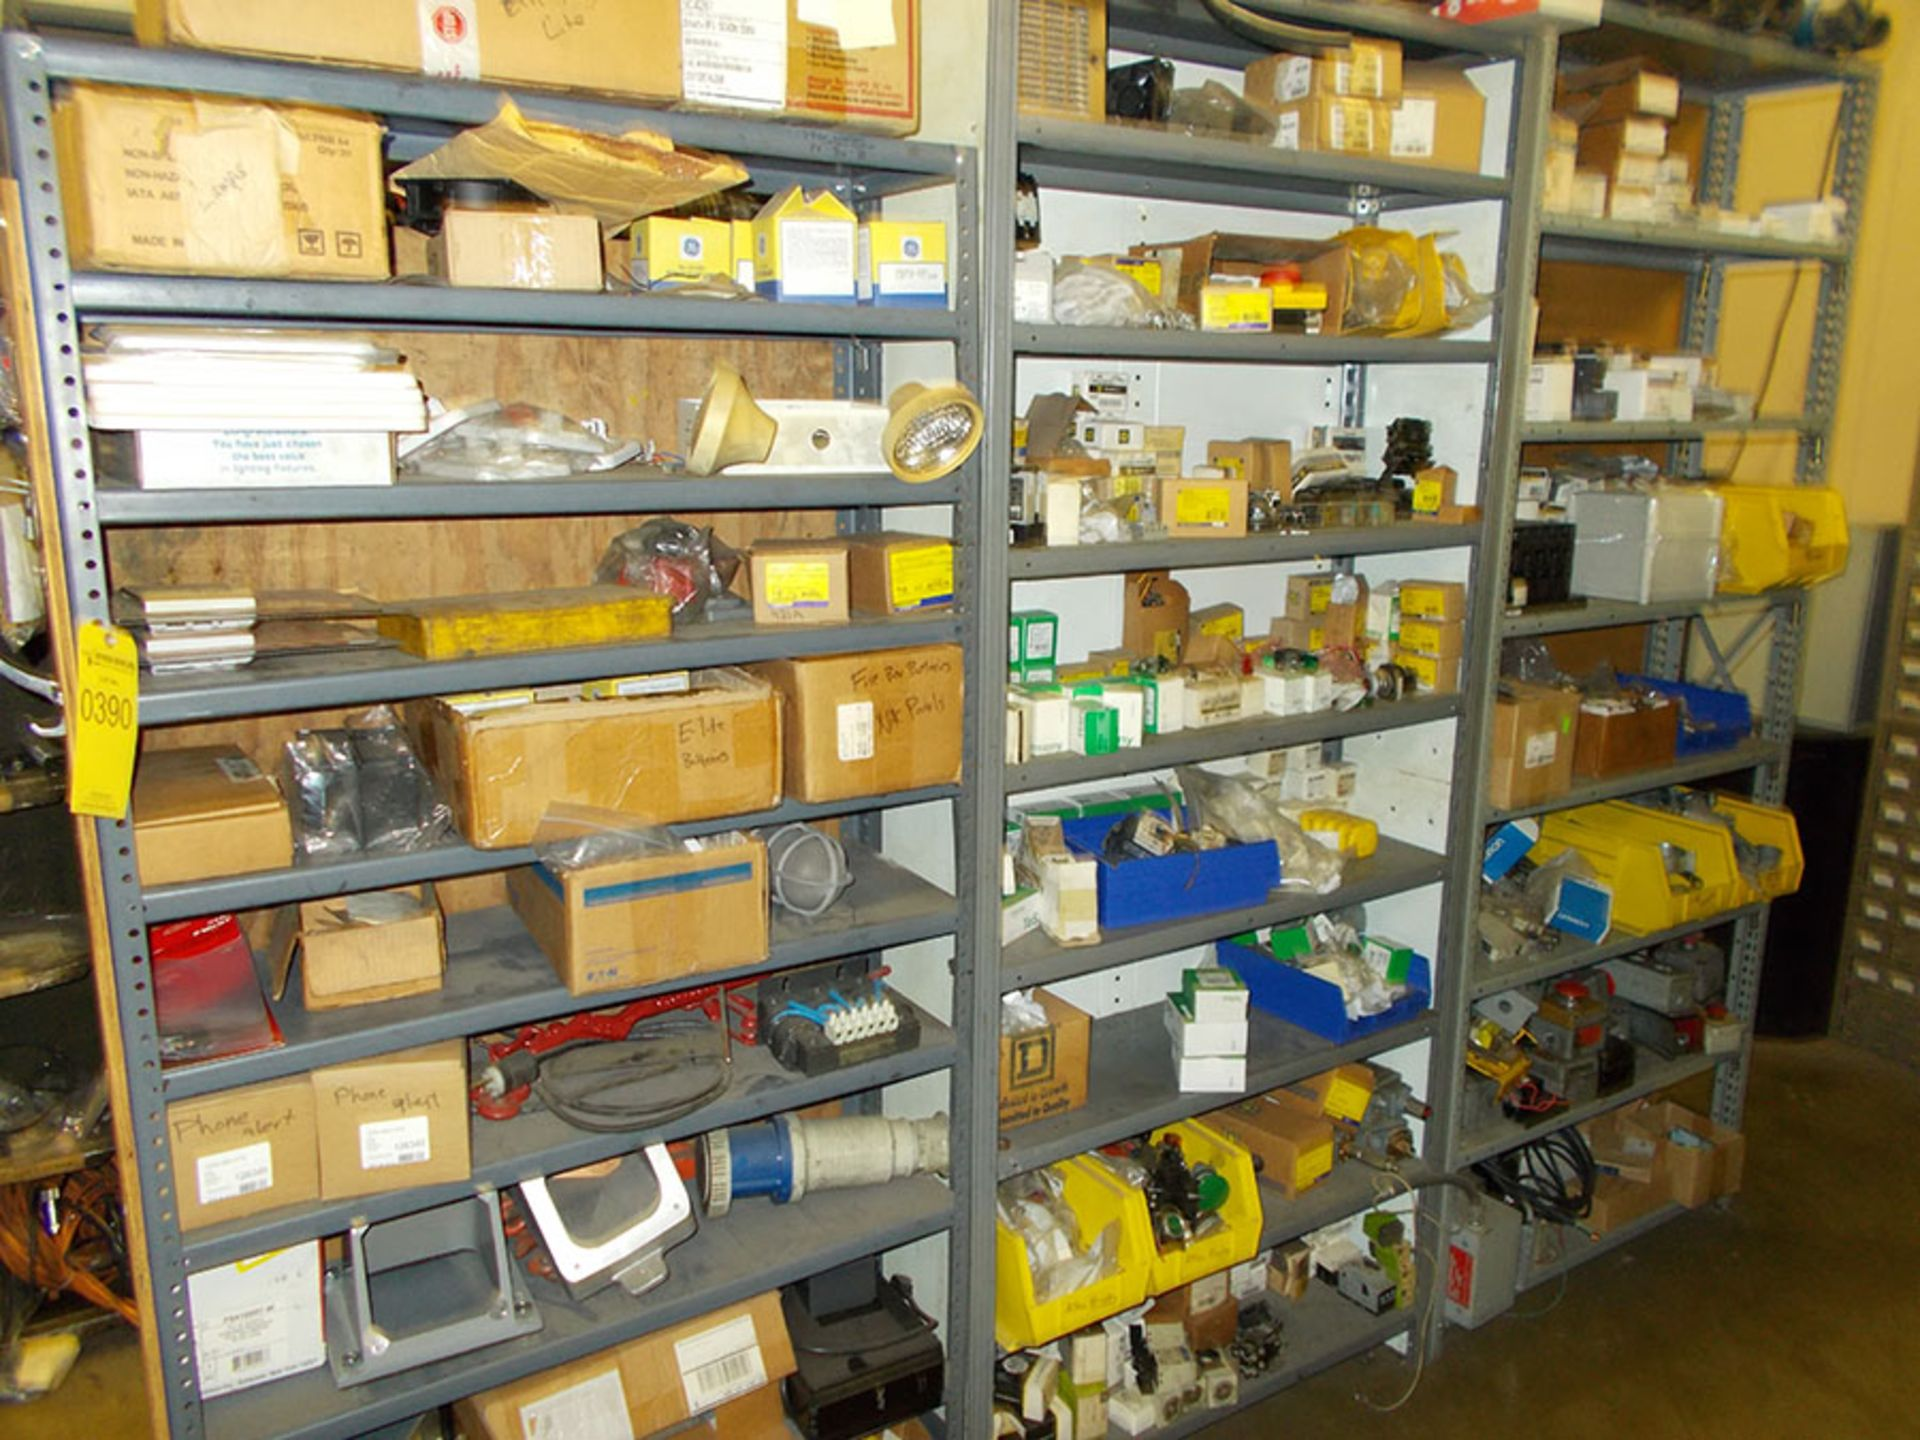 Lot 390 - REMAINDER OF ITEMS IN ELECTRIC SUPPLY CAGE